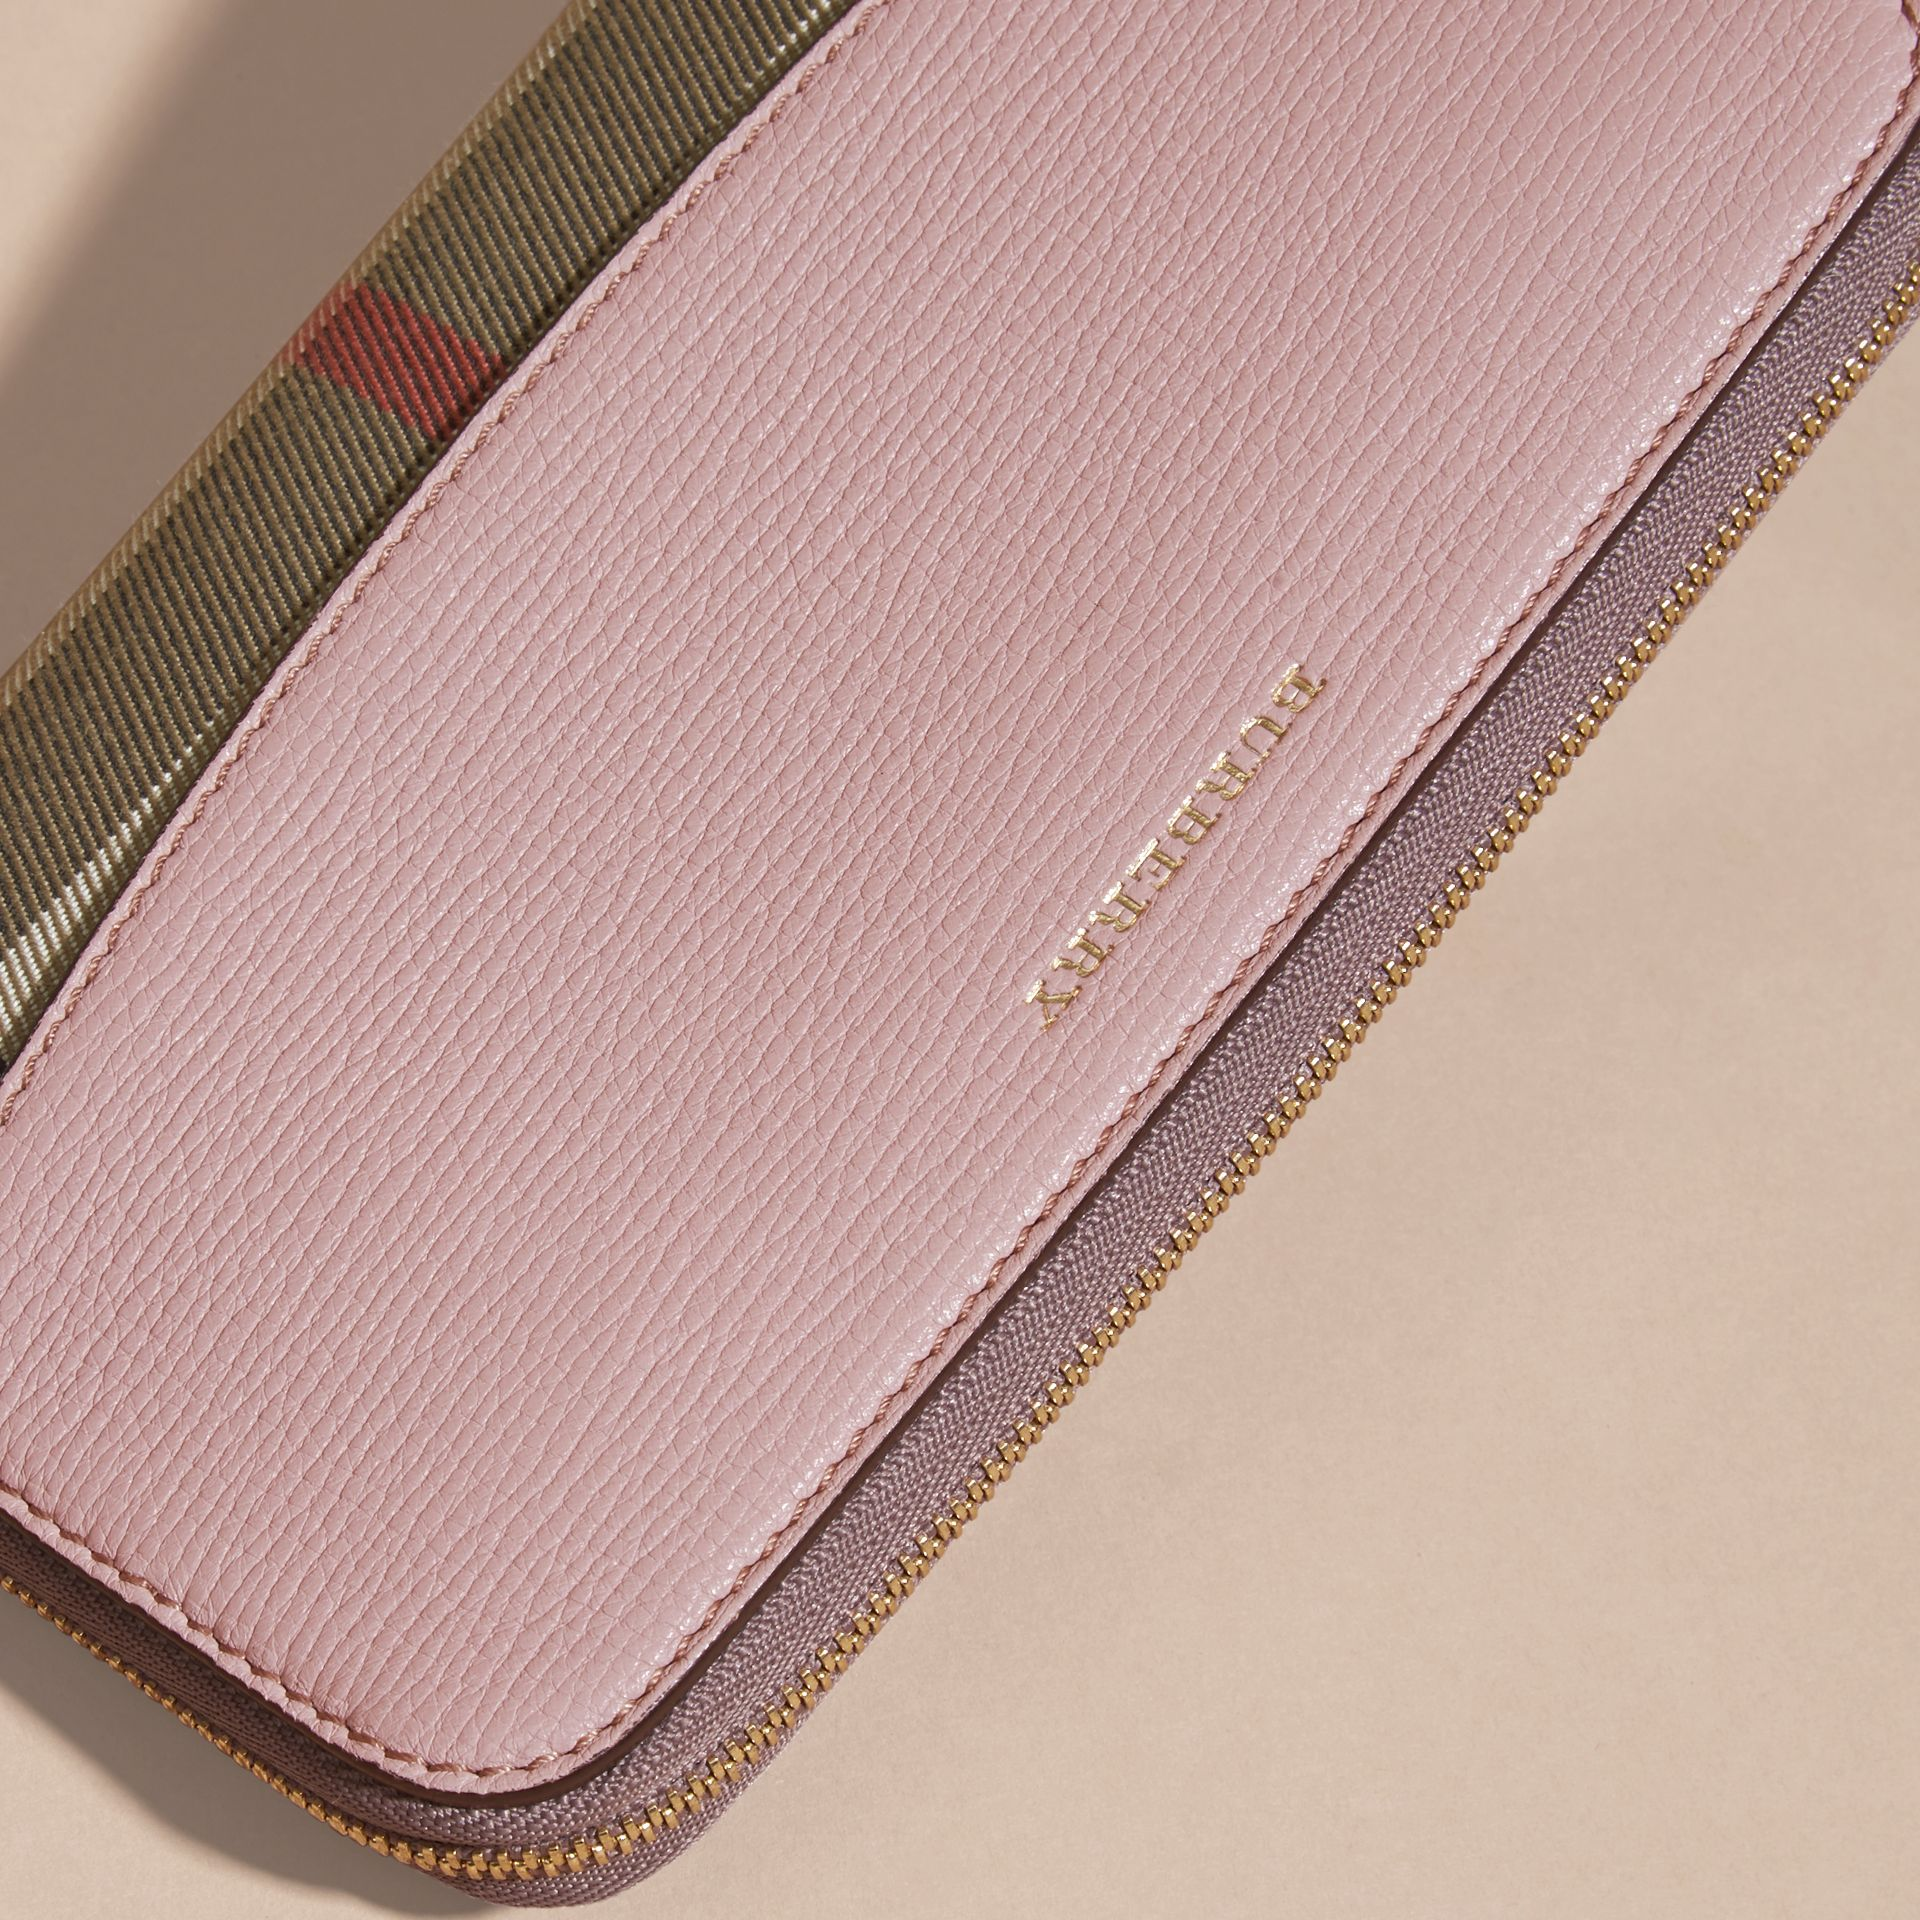 Pale orchid House Check and Leather Ziparound Wallet Pale Orchid - gallery image 4